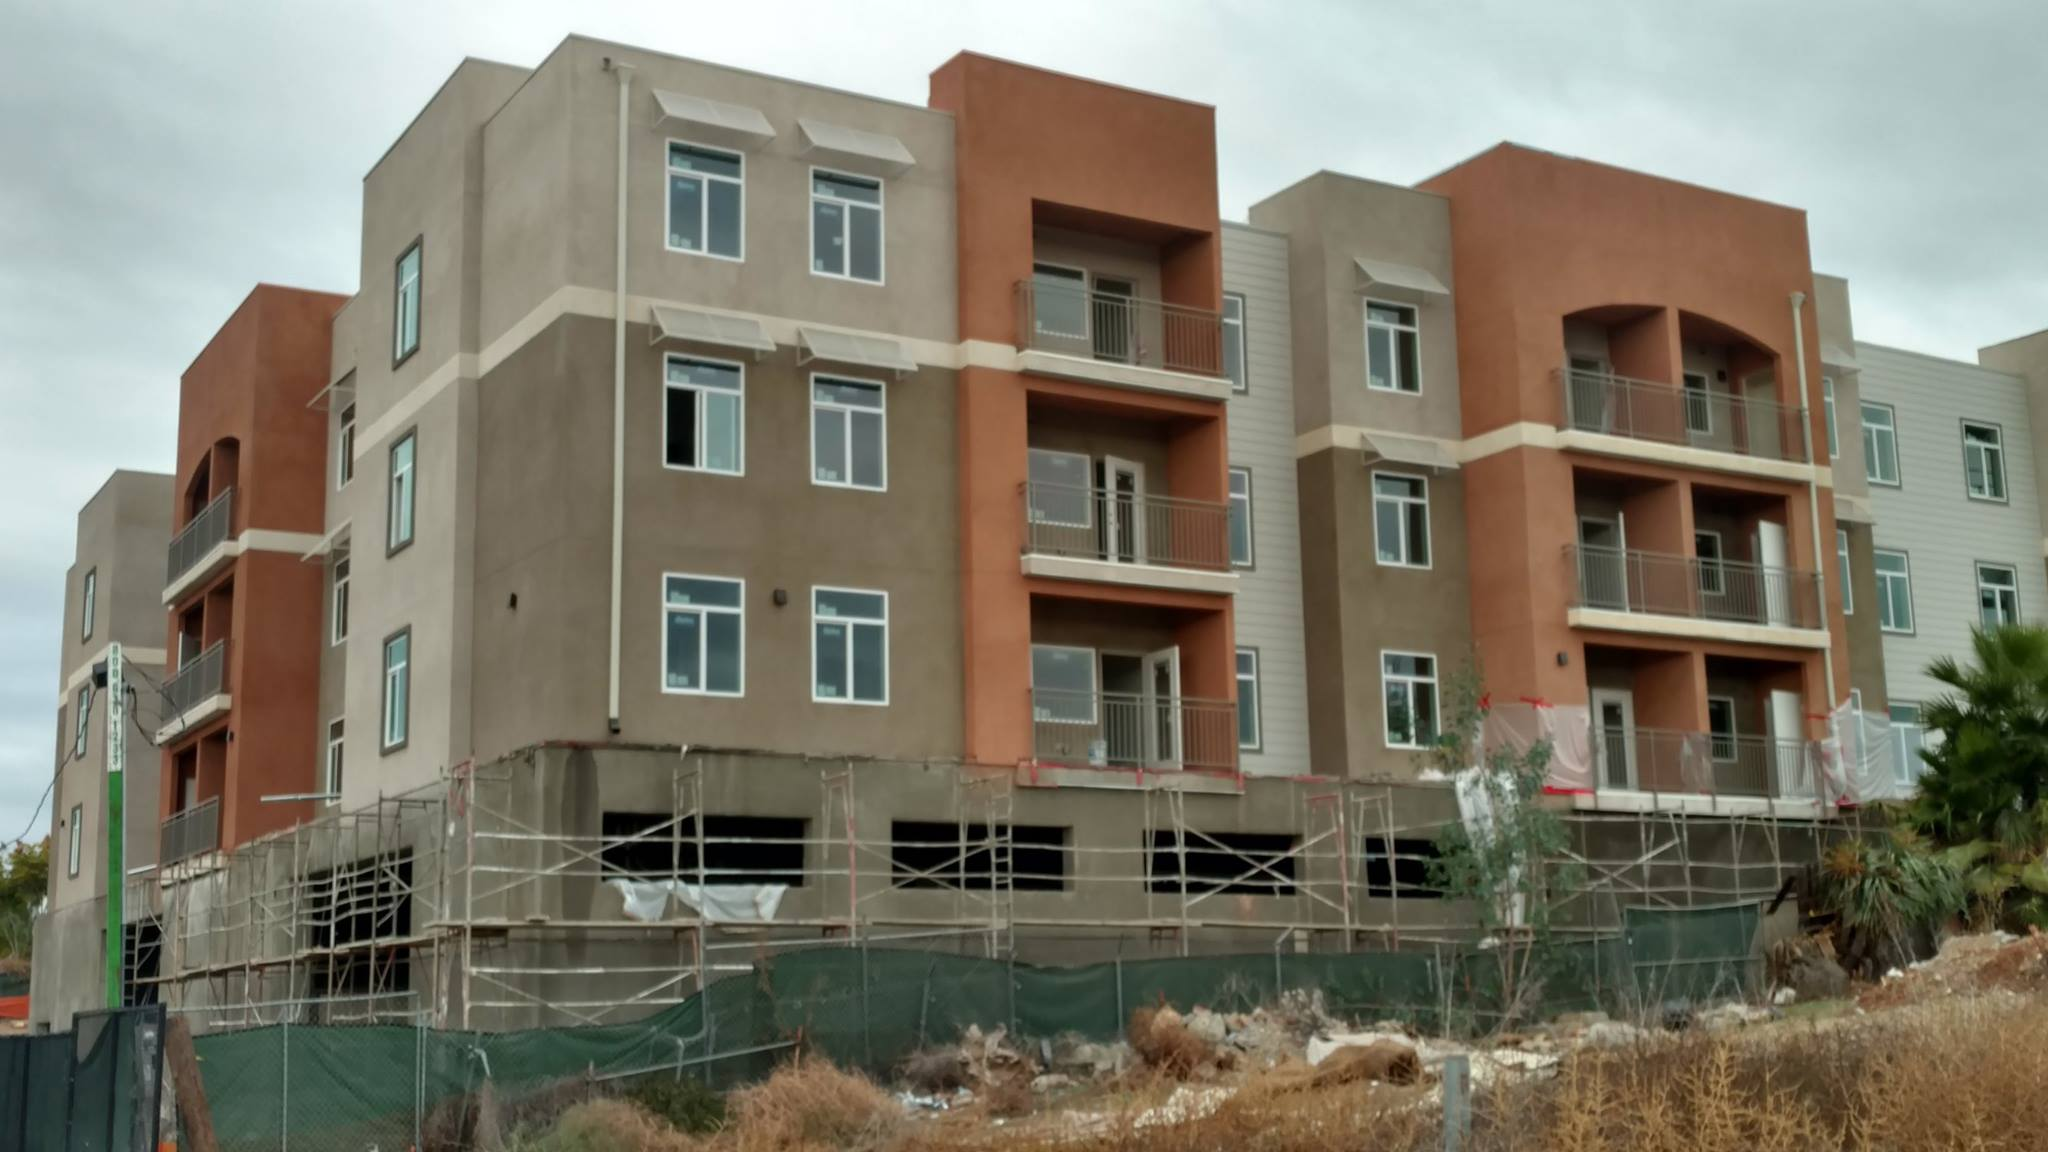 Scaffolding has now been removed from the building's exterior allowing the finished stucco and color to shine through.